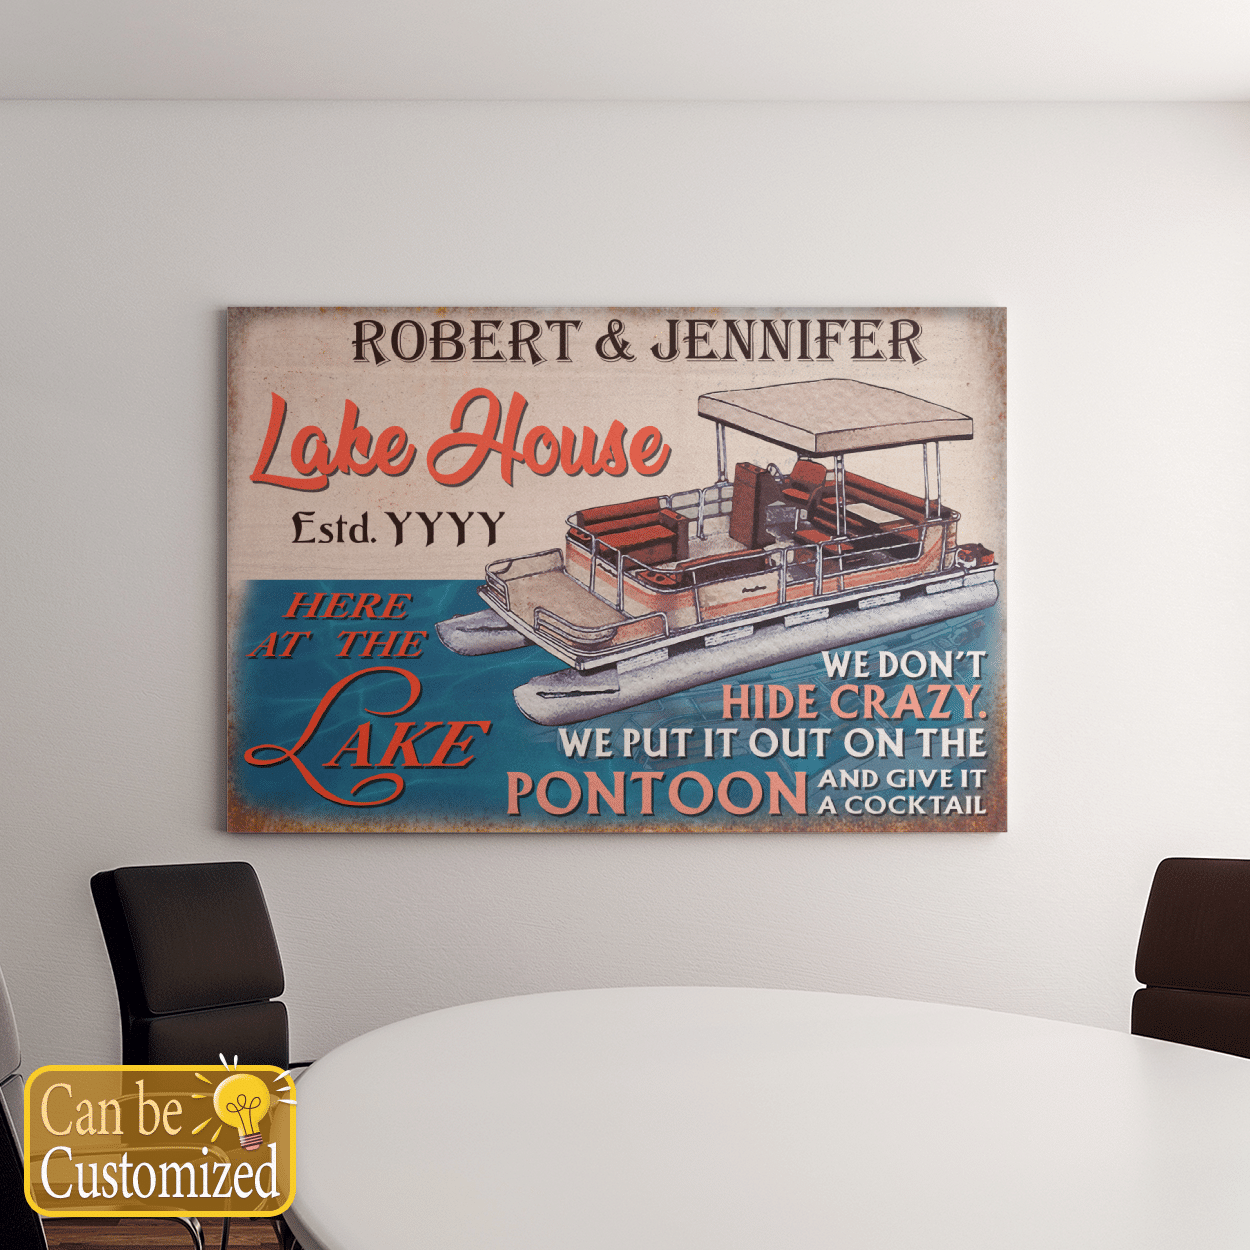 Personalized Couple Lake House And Pontoon Canvases Pictures Puzzles Posters Quilts Blankets